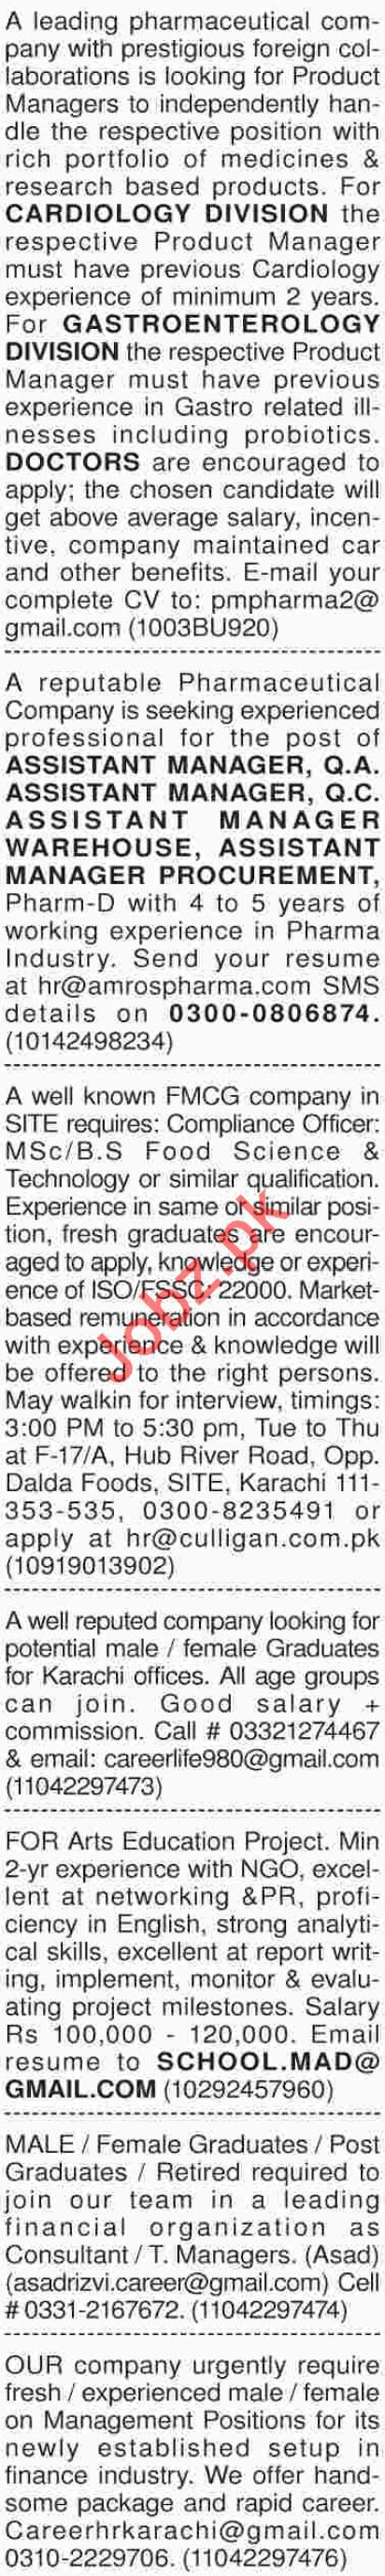 Daily Dawn Sunday Newspaper Classified Jobs 11 Nov 2018